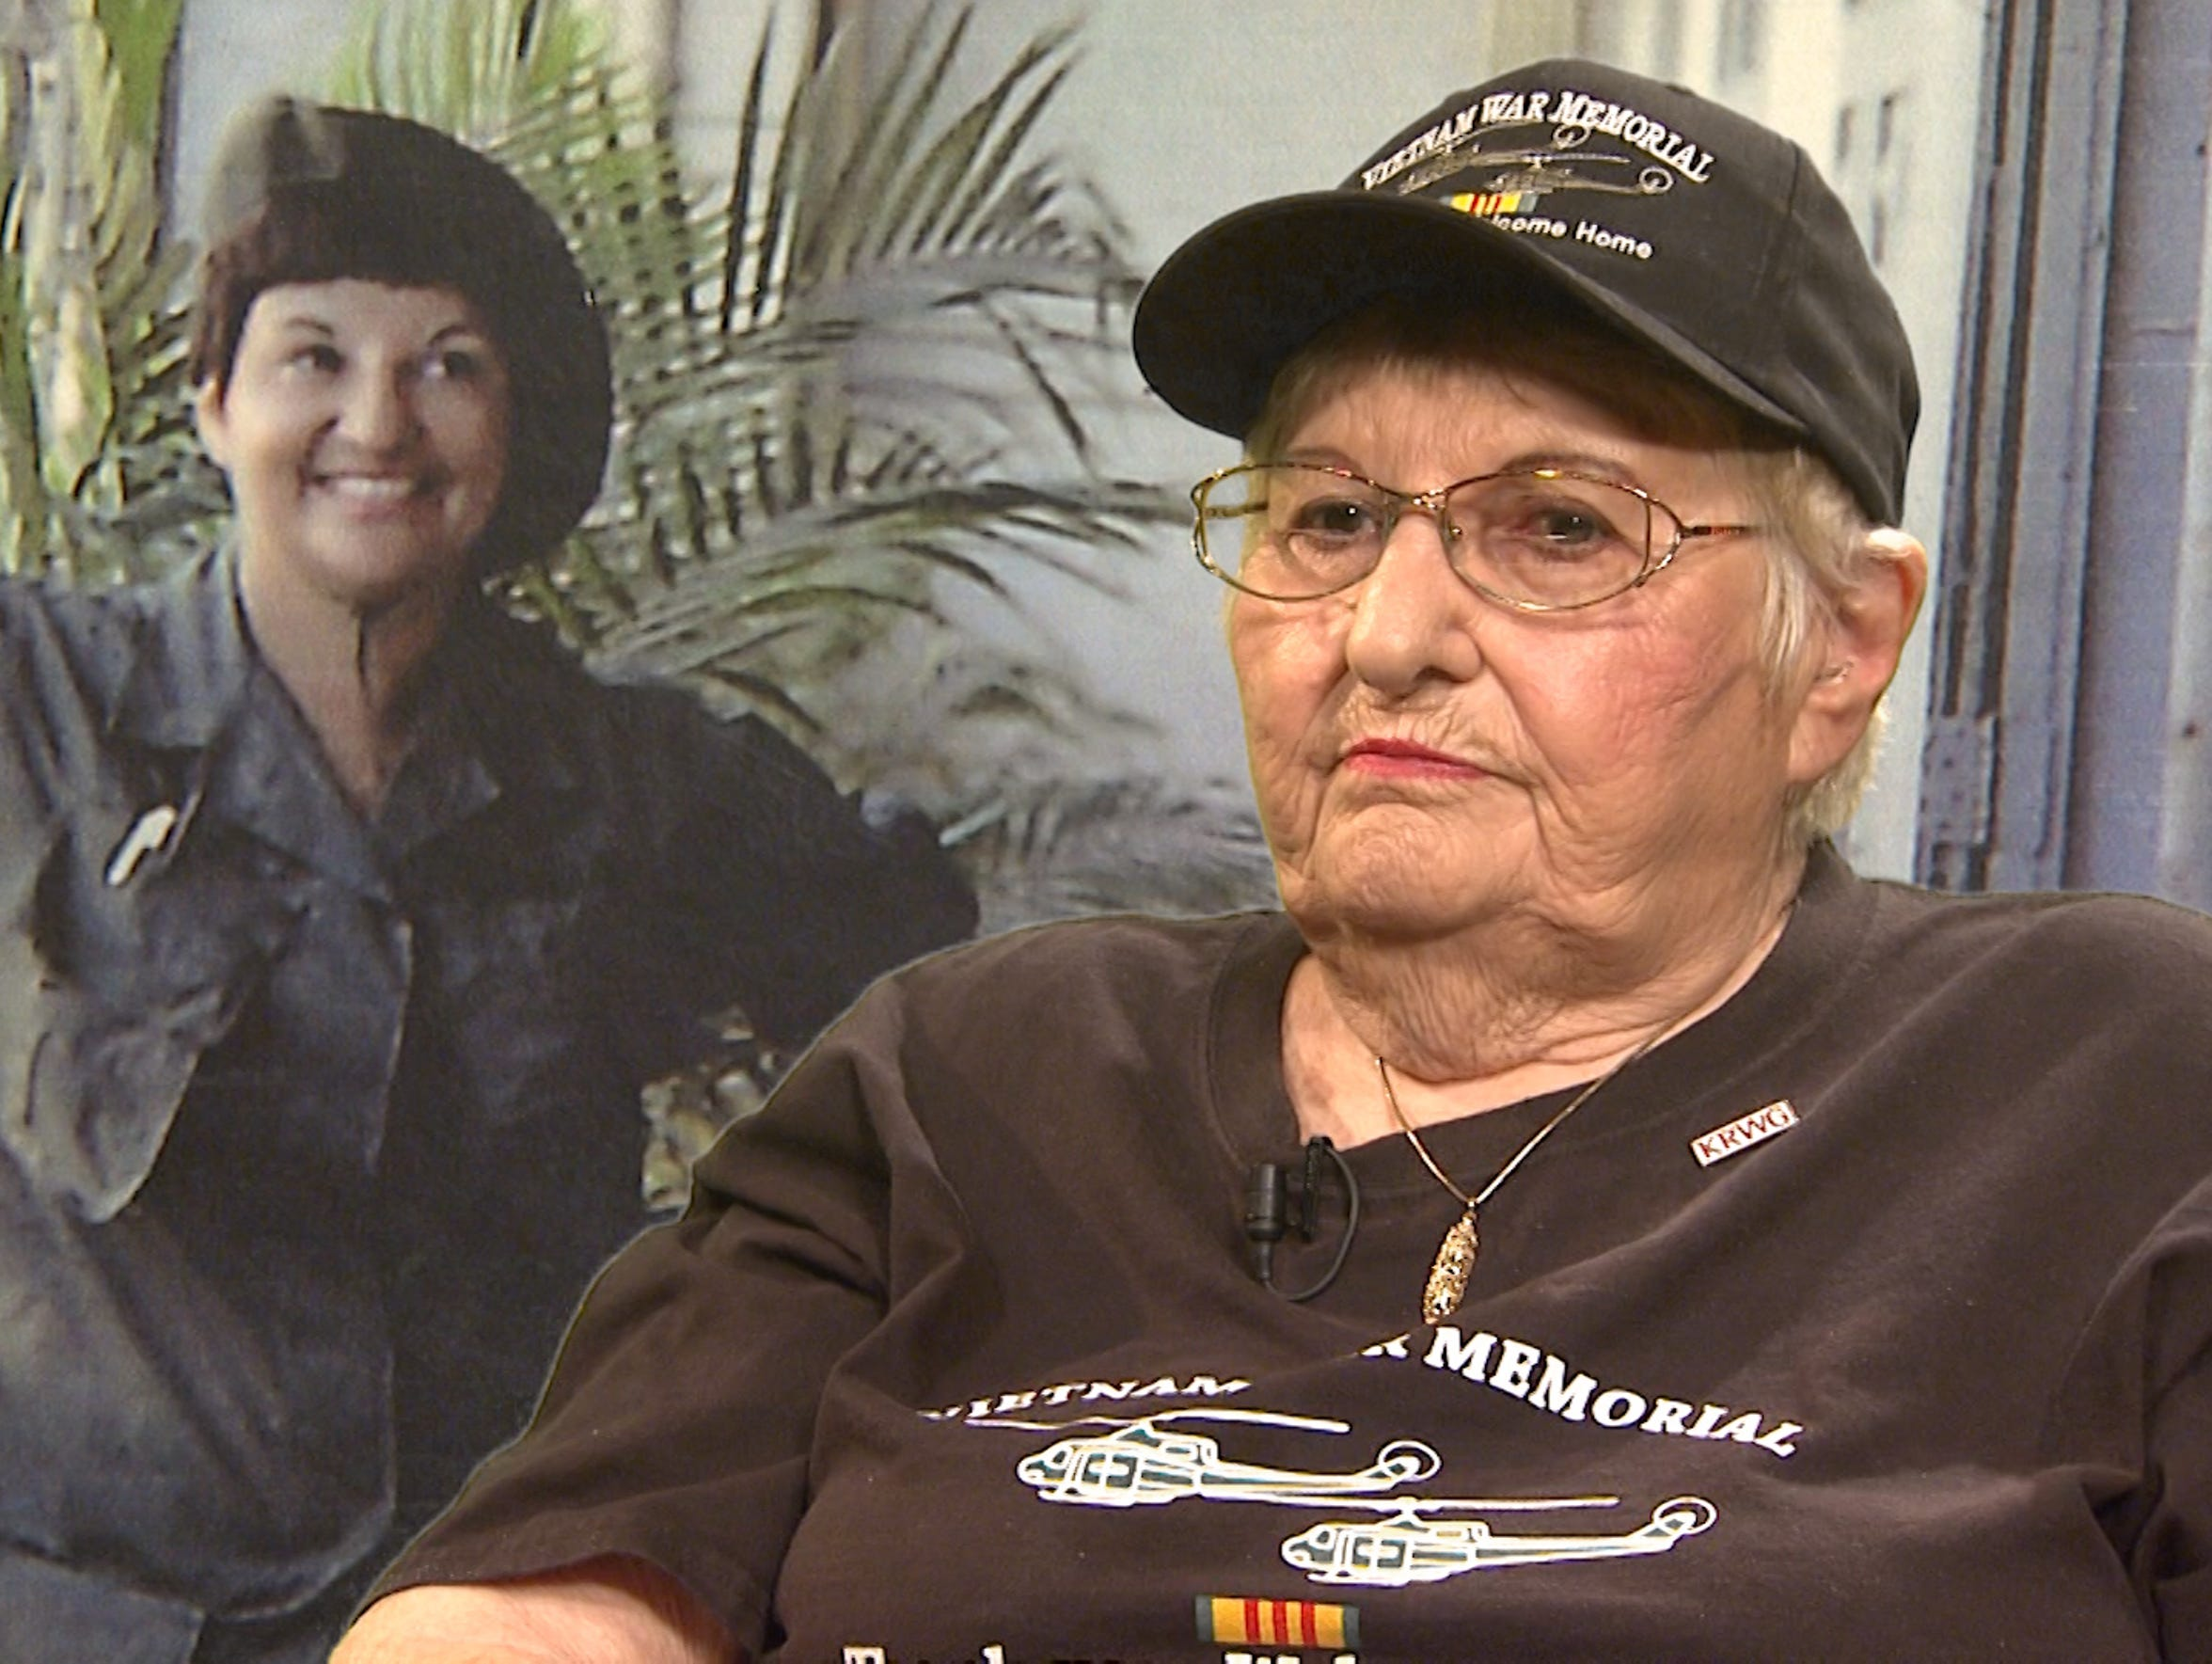 """Frances Williams was among the New Mexico Vietnam veterans interviewed for KRWG TV's """"Our Stories: Vietnam"""" series in 2017. She appears next to a photo of herself taken in Vietnam in 1967."""